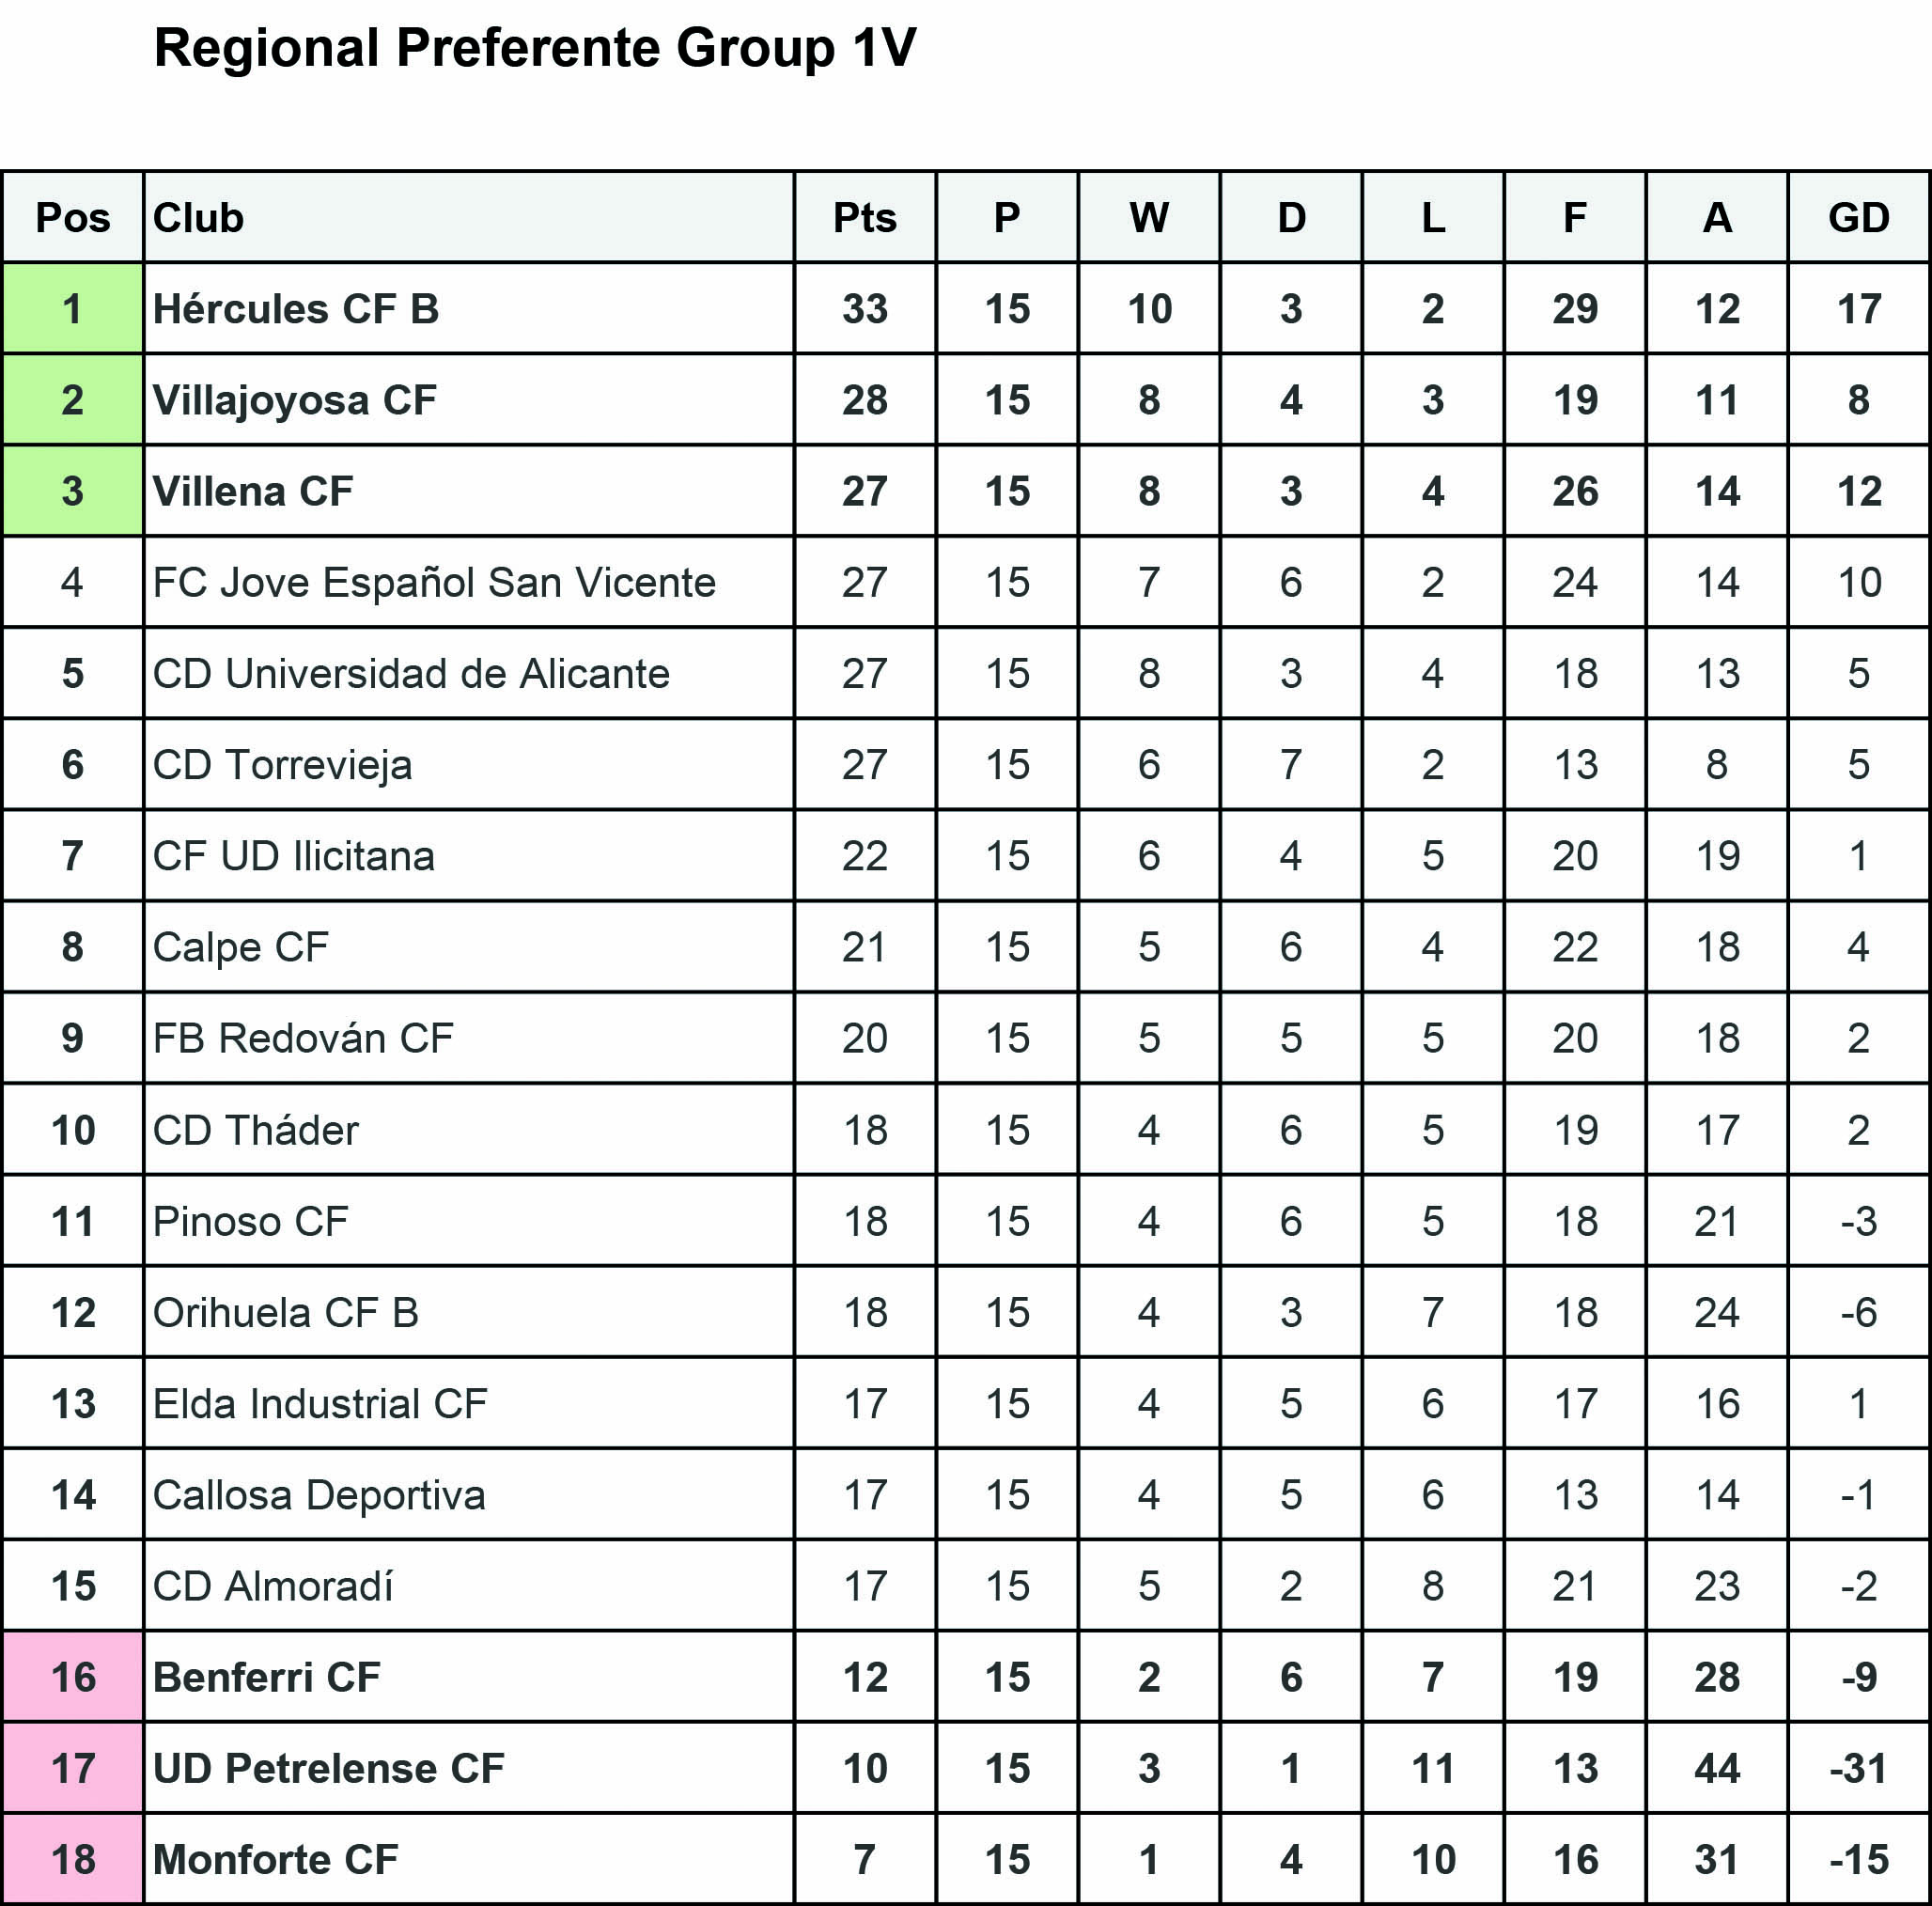 Preferente Group 1V League Table